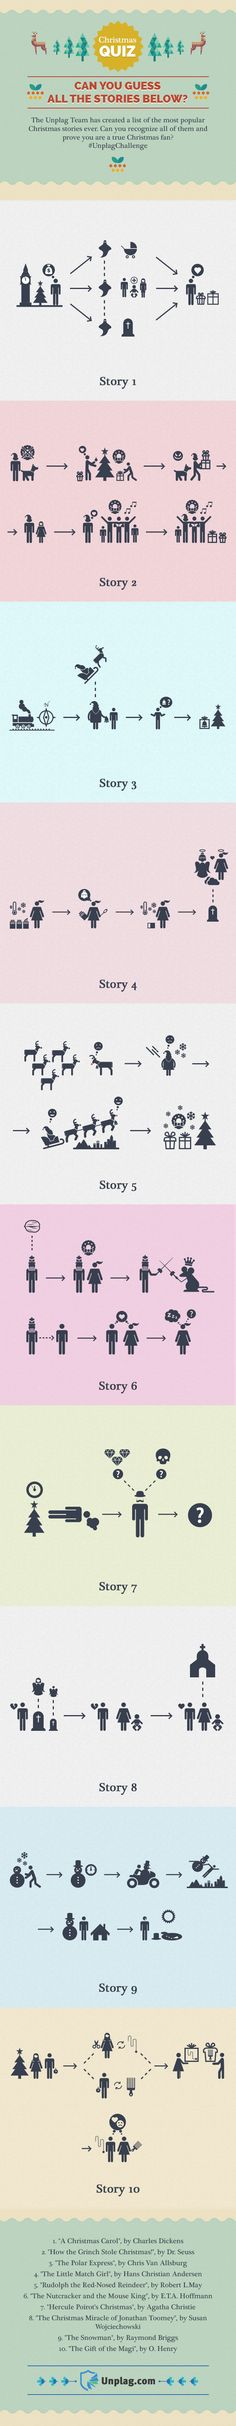 42 best books infographics images on pinterest info graphics christmas story quiz by unplag infographic fandeluxe Gallery